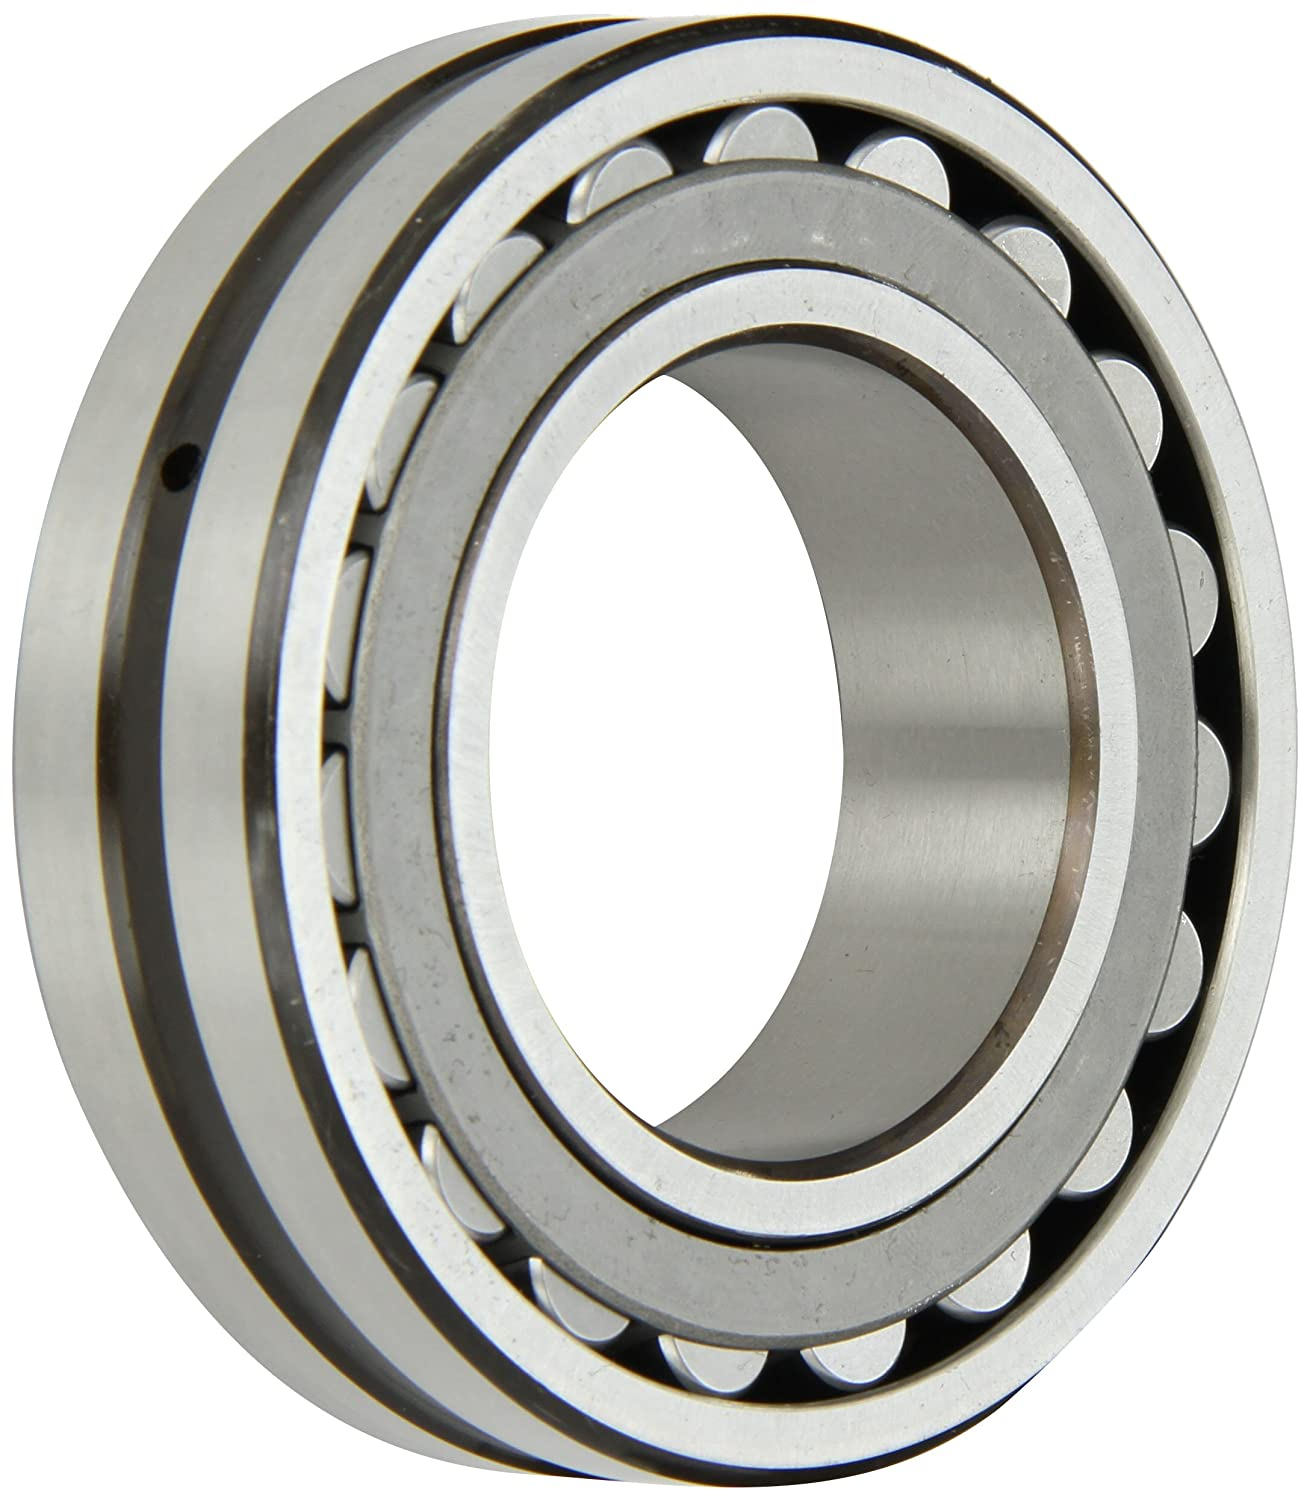 SKF Explorer Spherical Roller Bearing, Straight Bore, Pressed Steel Cage,  CN Clearance, Metric: Amazon.com: Industrial & Scientific